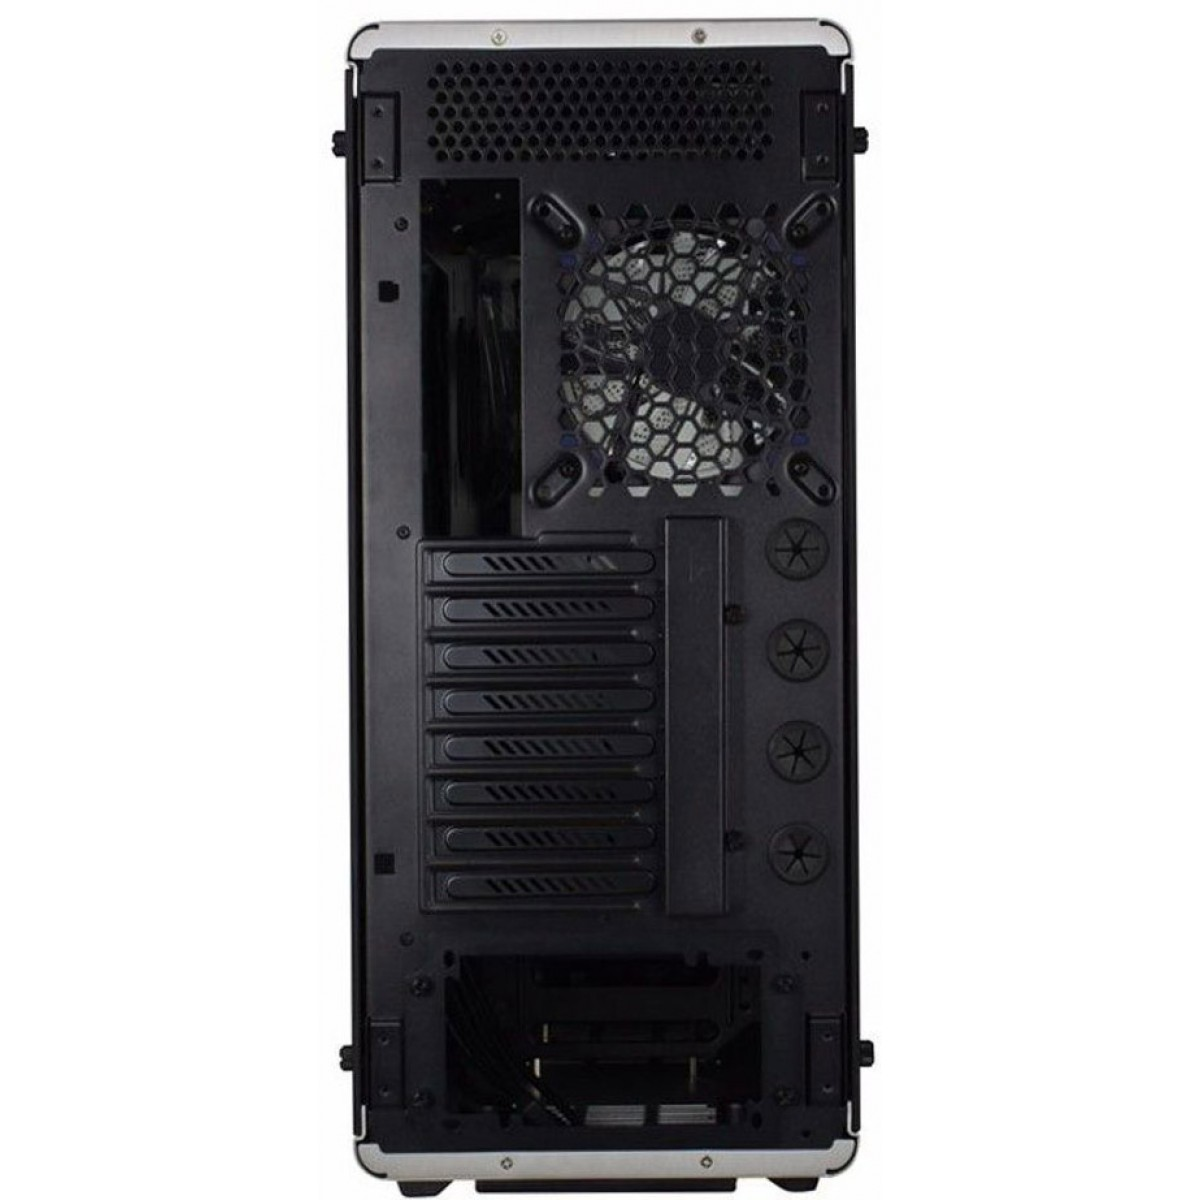 Gabinete Gamer Gamemax Raider XT, Full Tower, S-Fan, Vidro Temperado, Black, S-Fonte